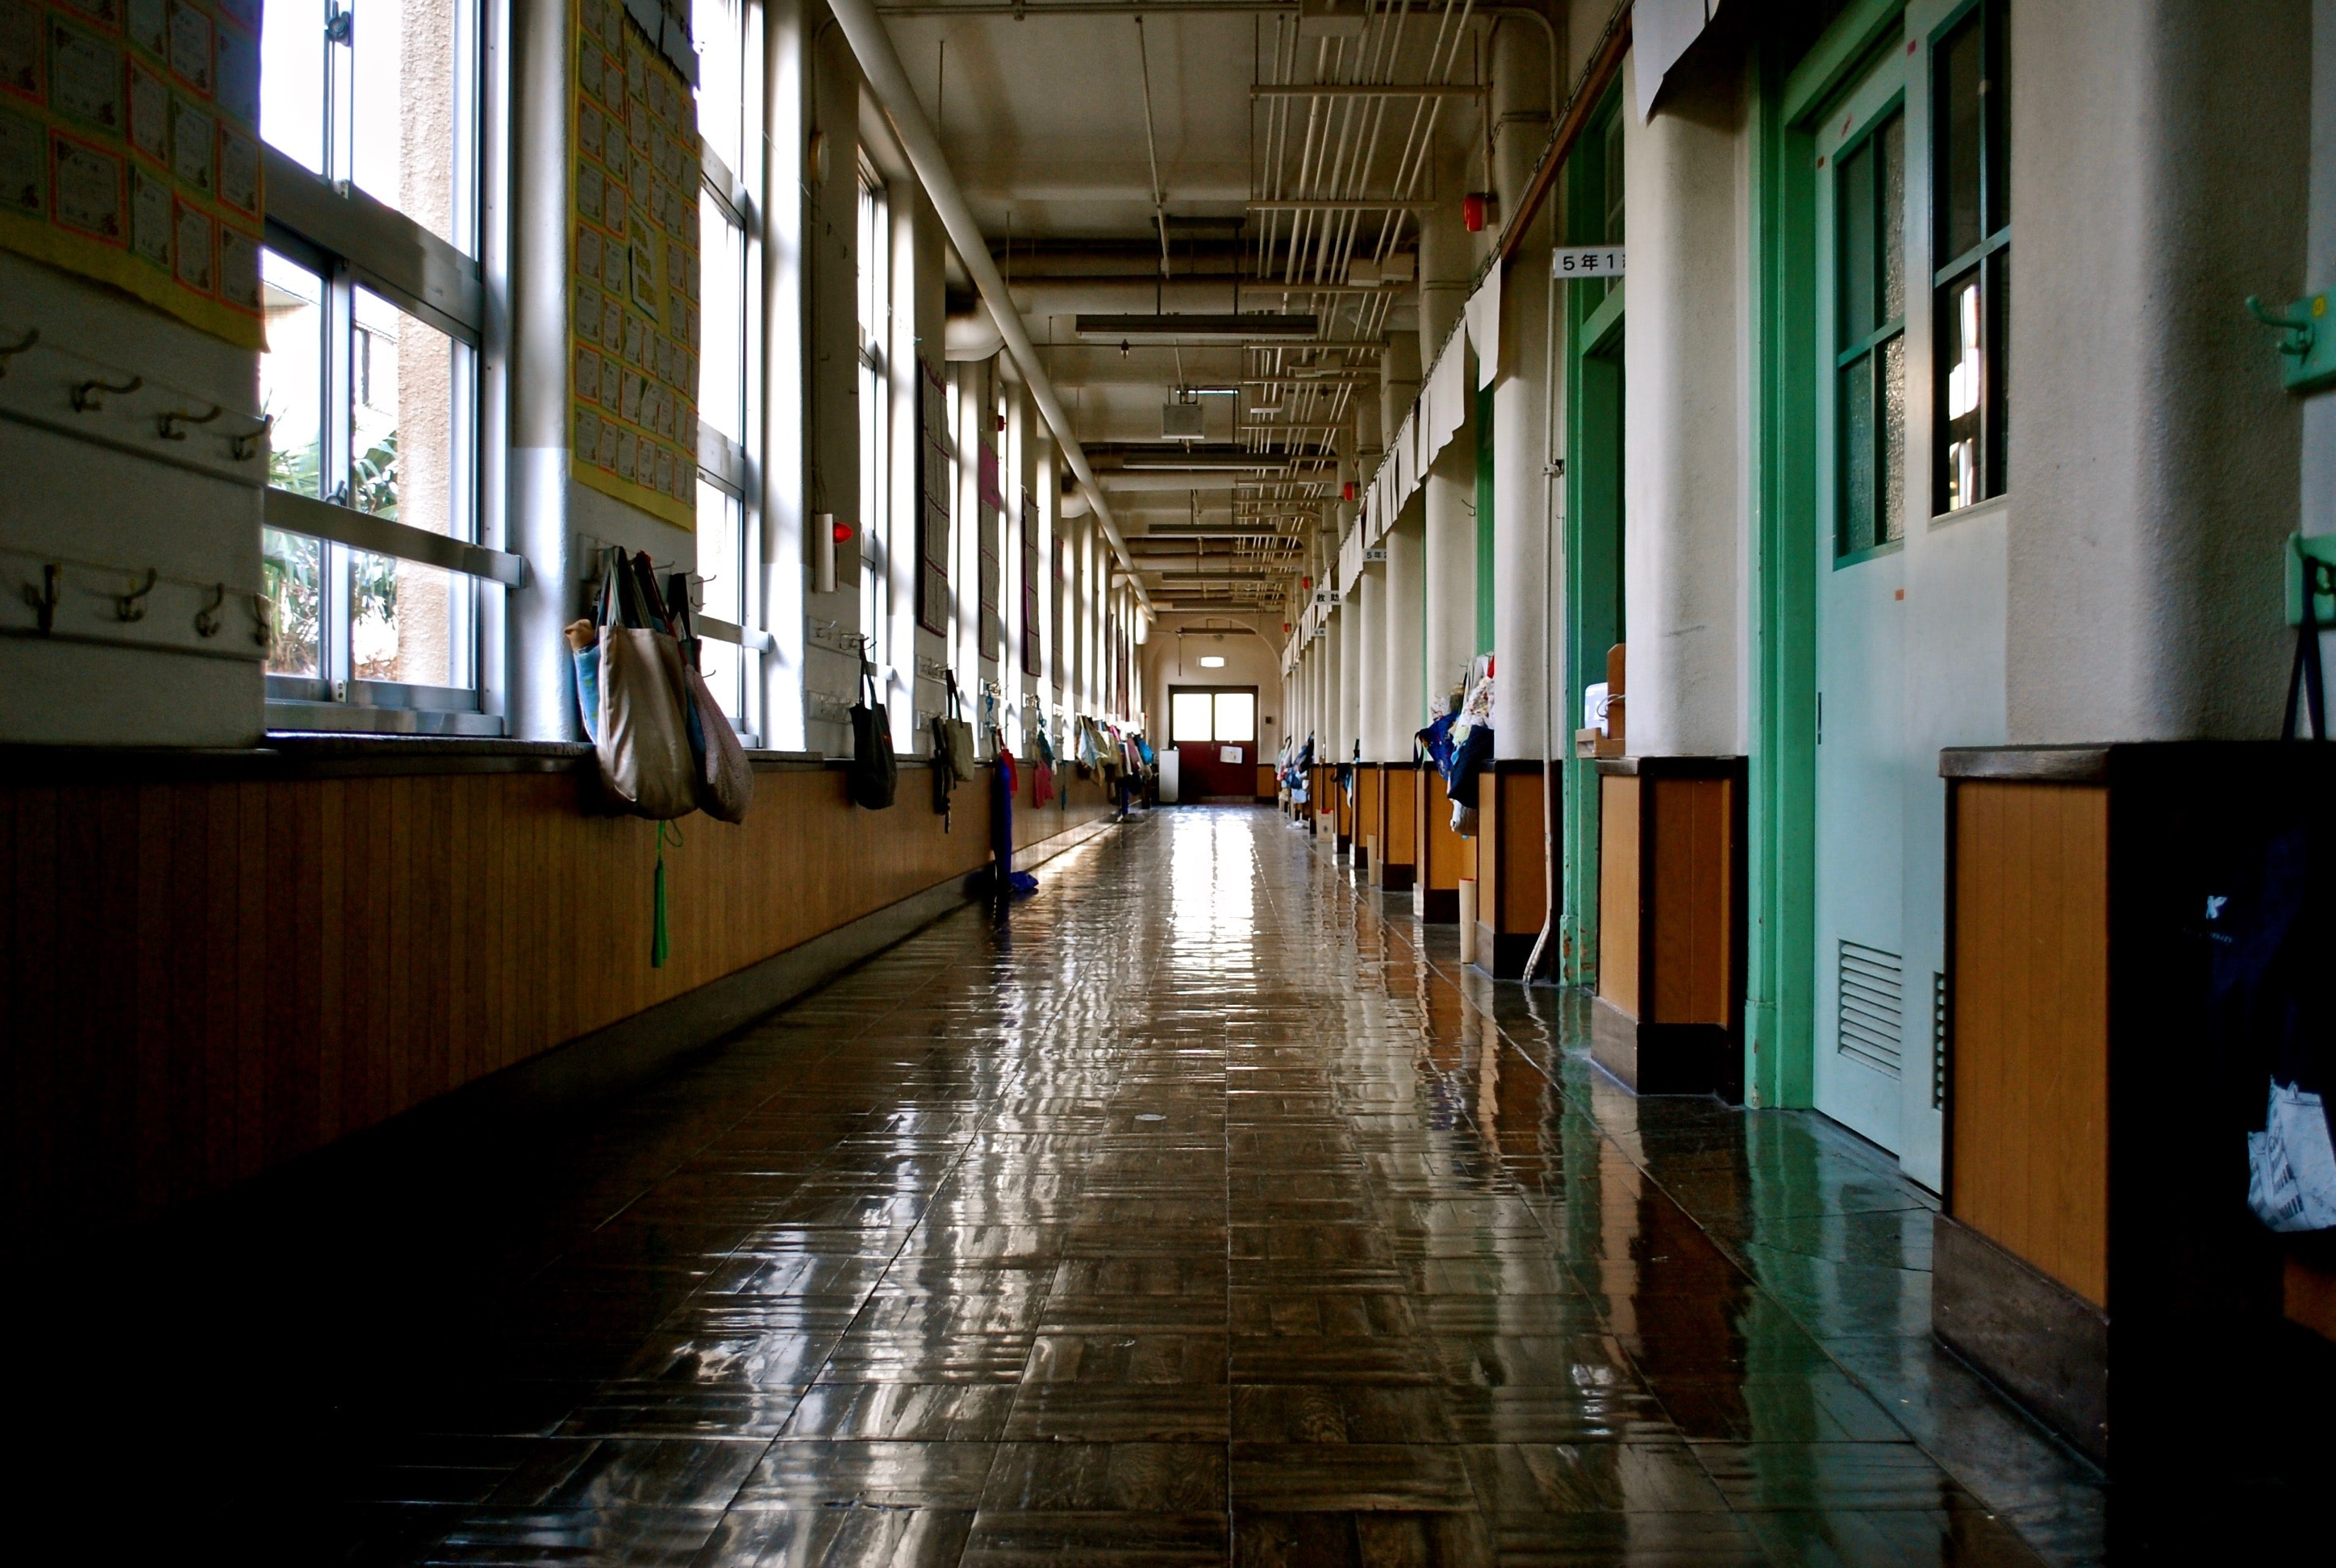 Chicago Uses Federal Funds for School Mental Health